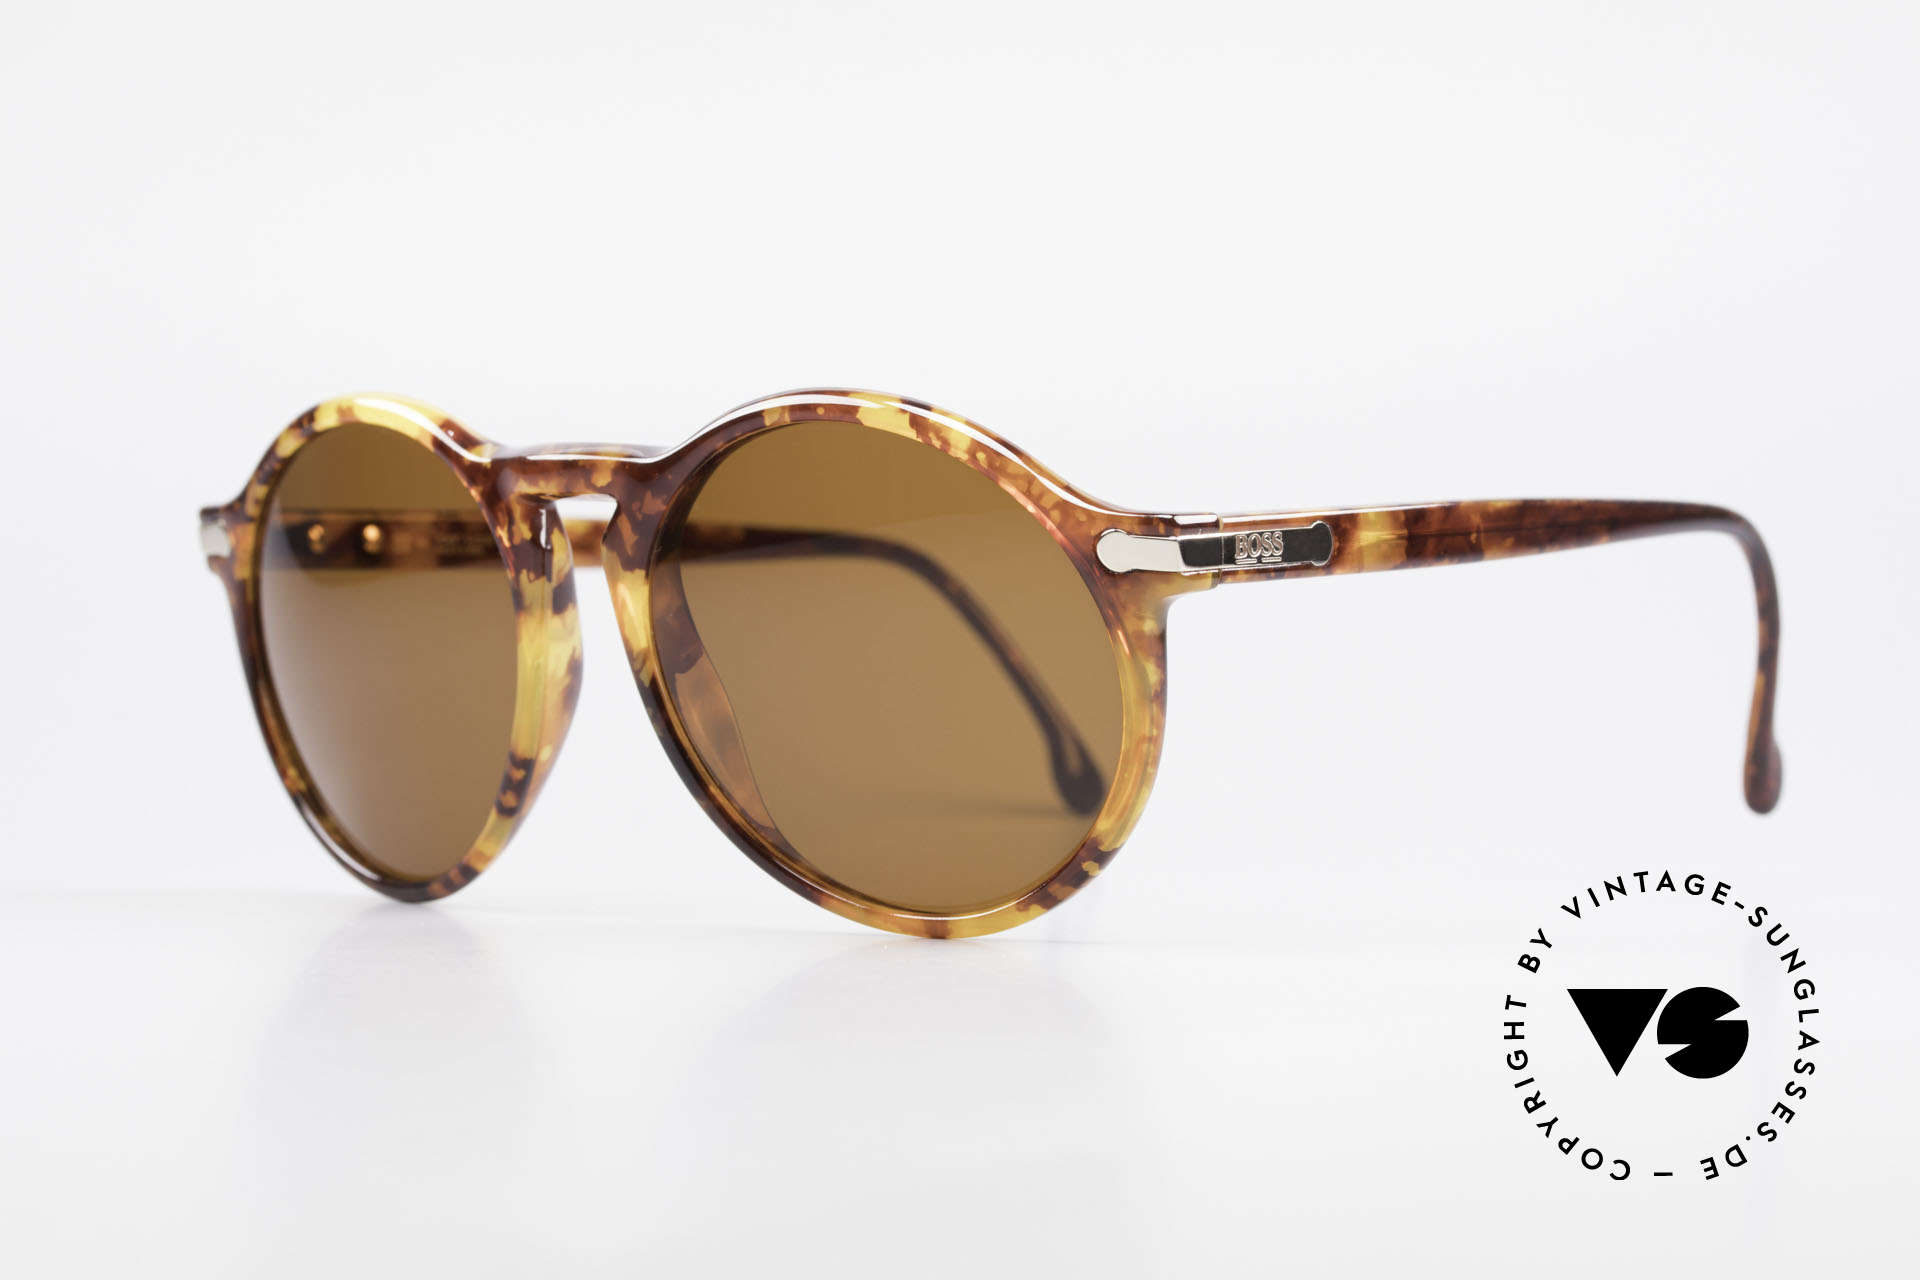 BOSS 5160 Big Panto 90's Sunglasses, big 'PANTO style' frame with interesting pattern, Made for Men